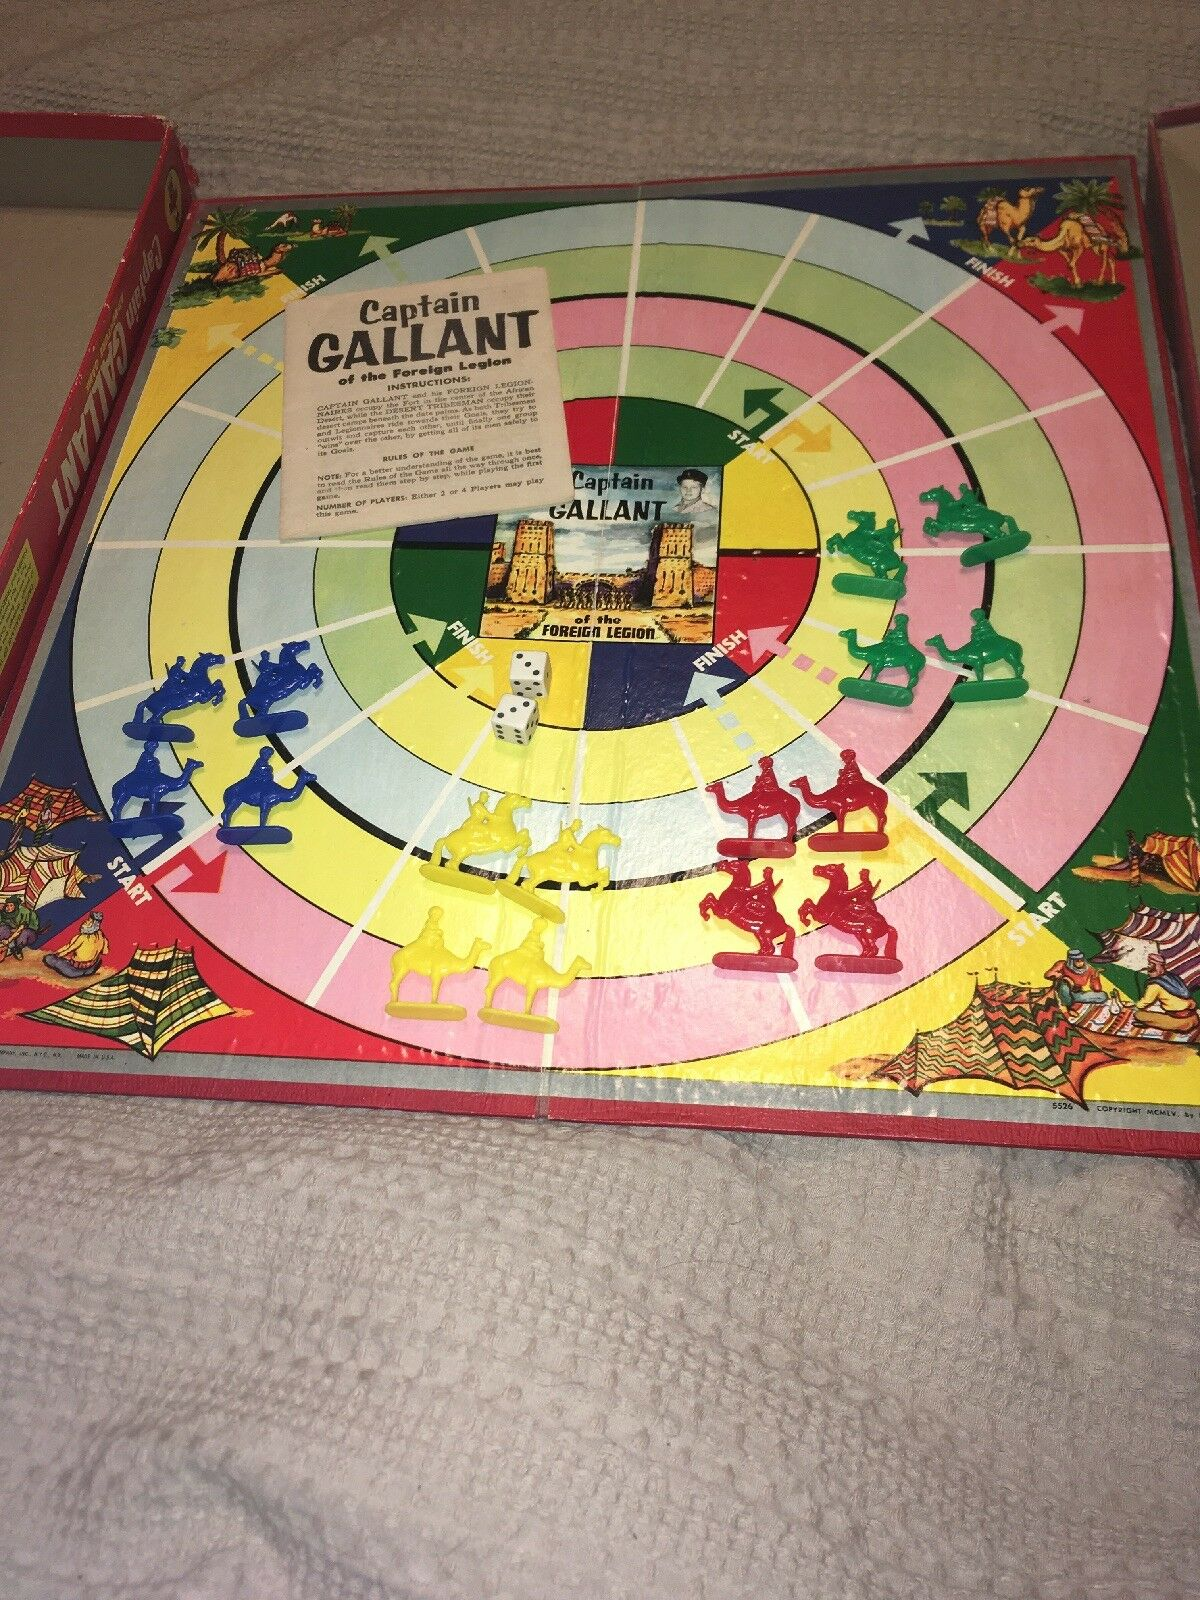 Vintage OF 1955 TRANSOGRAM CAPTAIN GALLANT OF Vintage THE FOREIGN LEGION BOARD GAME Nice 6b0e3d